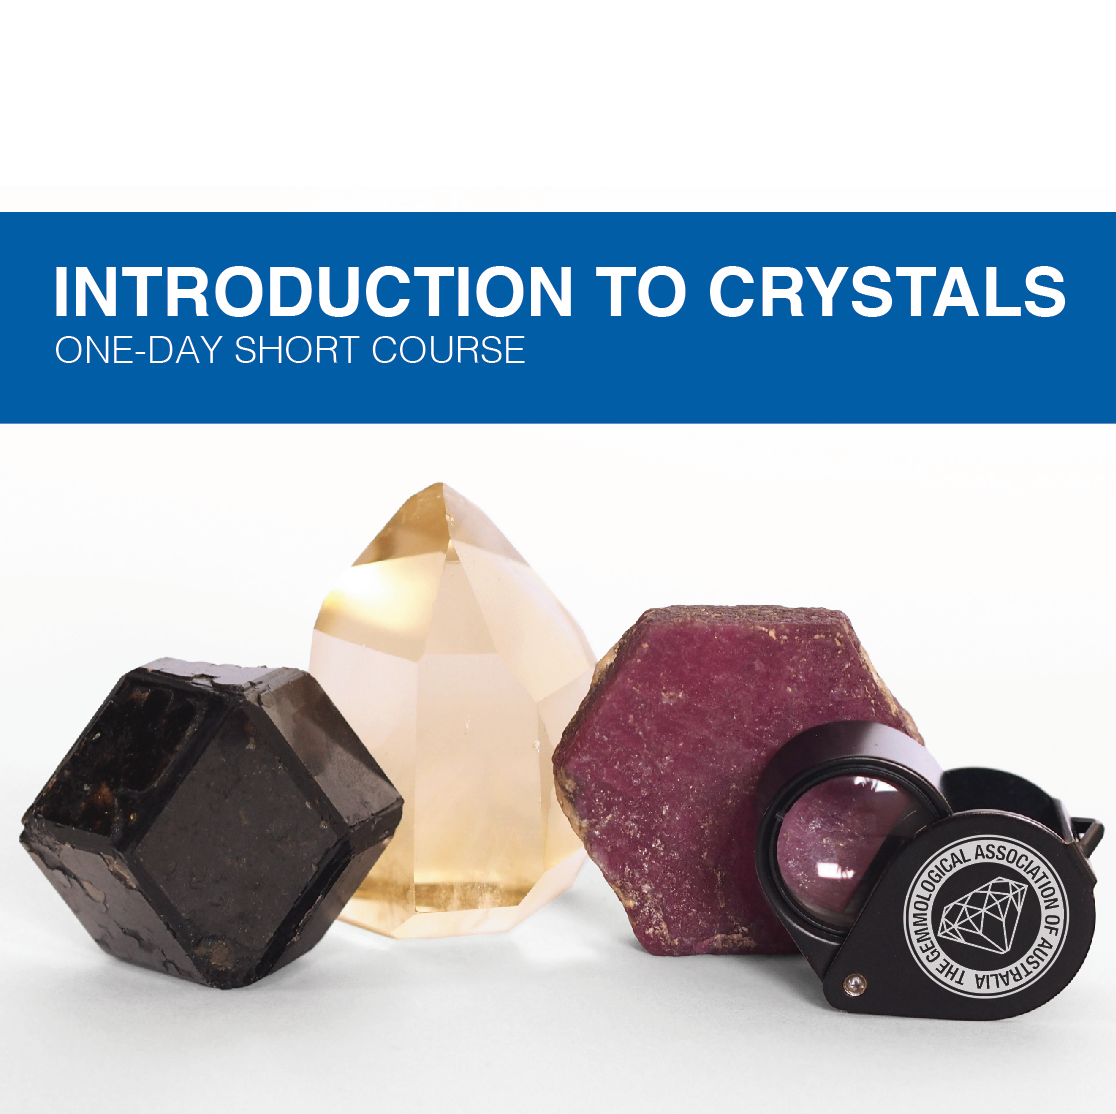 INTRODUCTION TO CRYSTALS - NOV 24TH